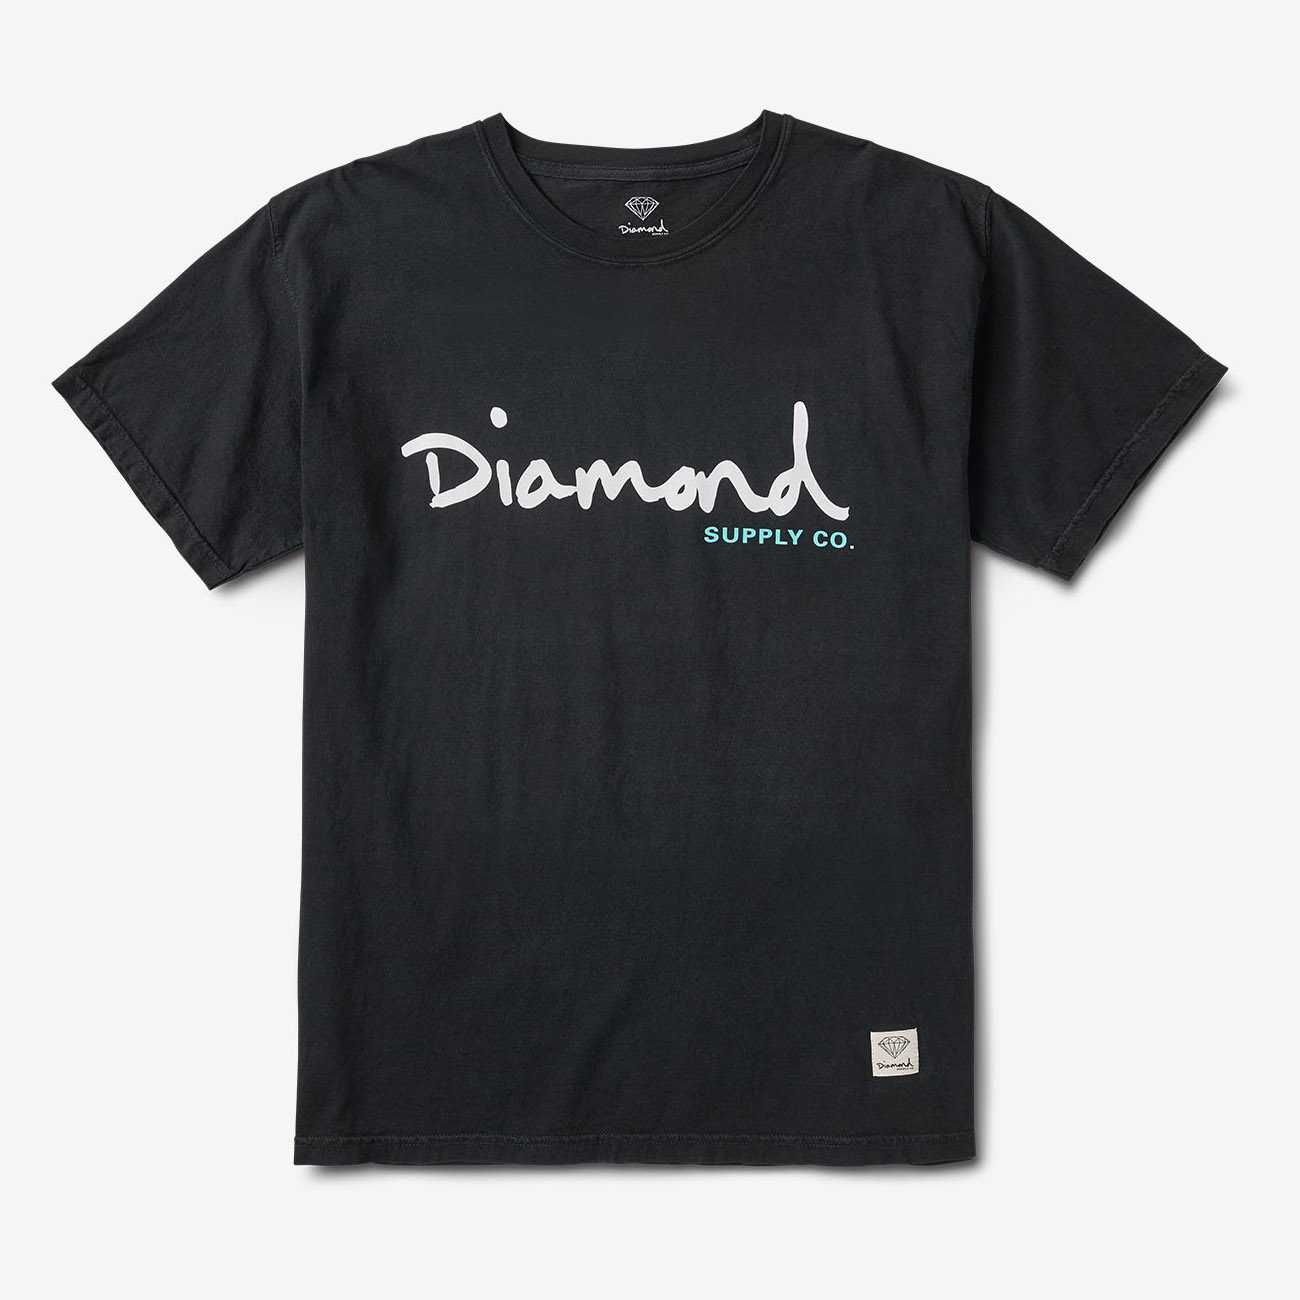 DMD TEE OG SCRPT OVERDYE BK M - Click to enlarge